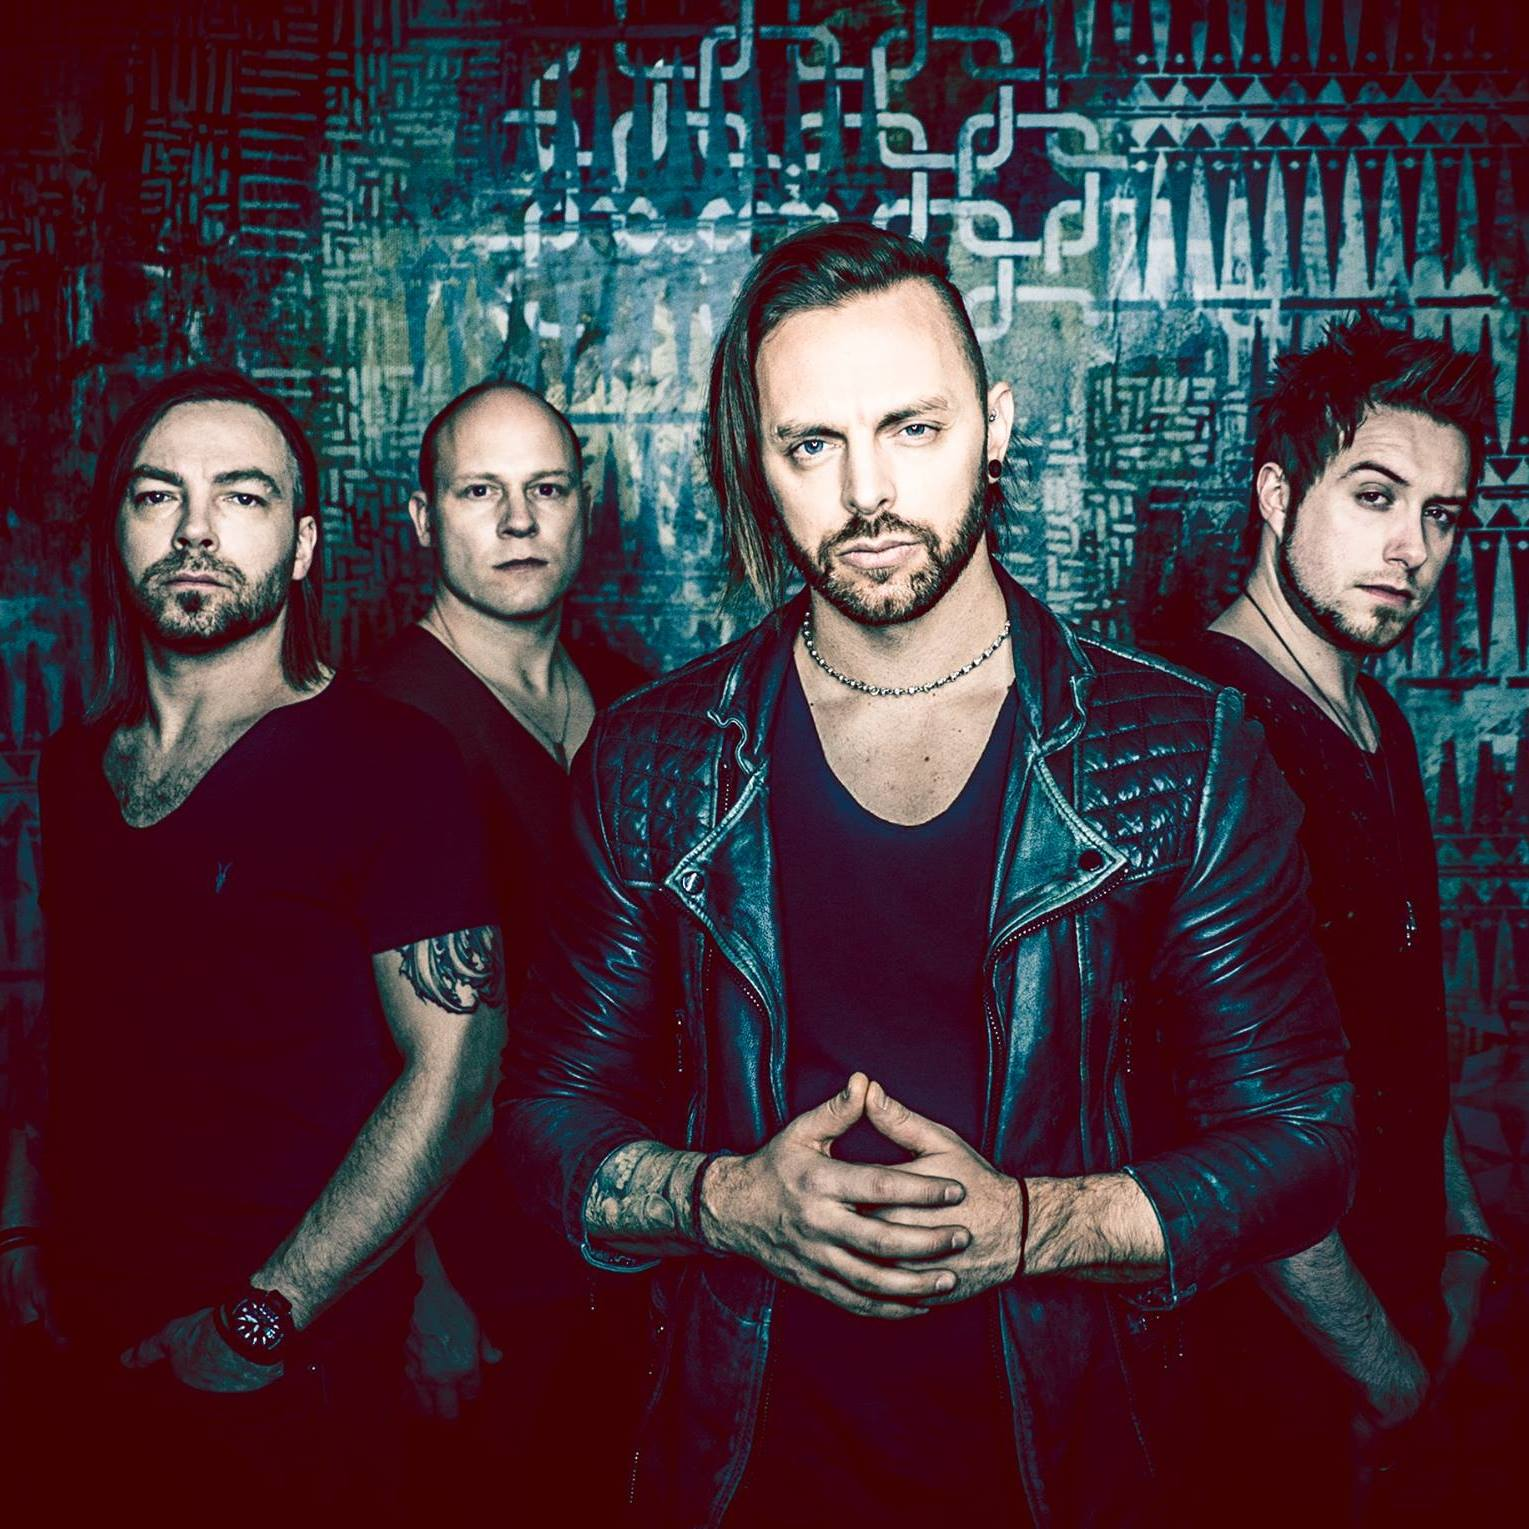 New Bullet For My Valentine Album In 2018 Ghost Cult